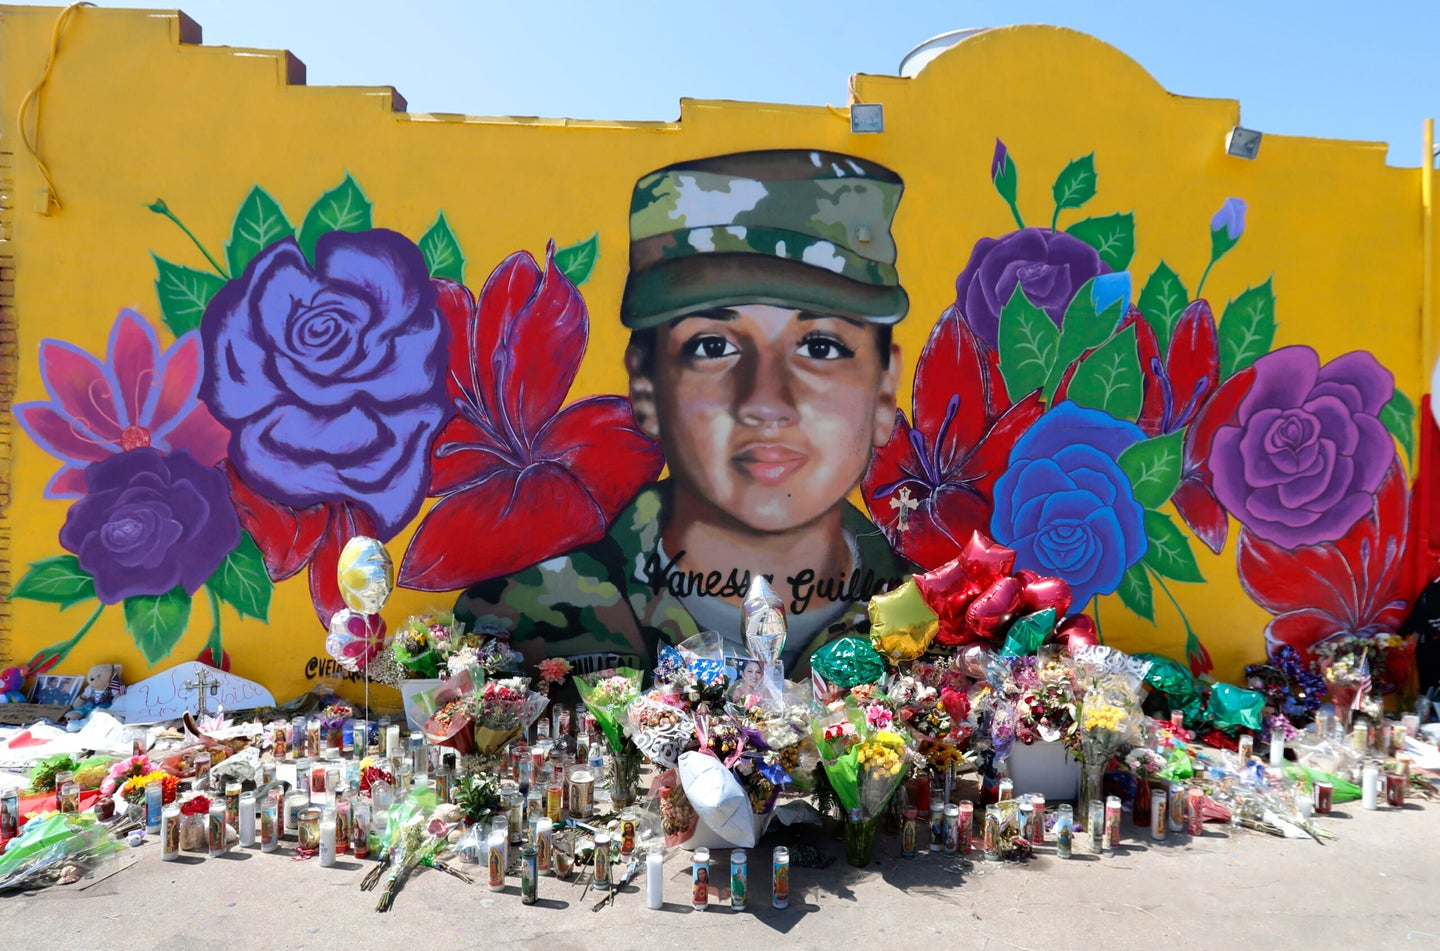 Six months after the disappearance and death of Vanessa Guillén, Army changes how missing soldiers are reported